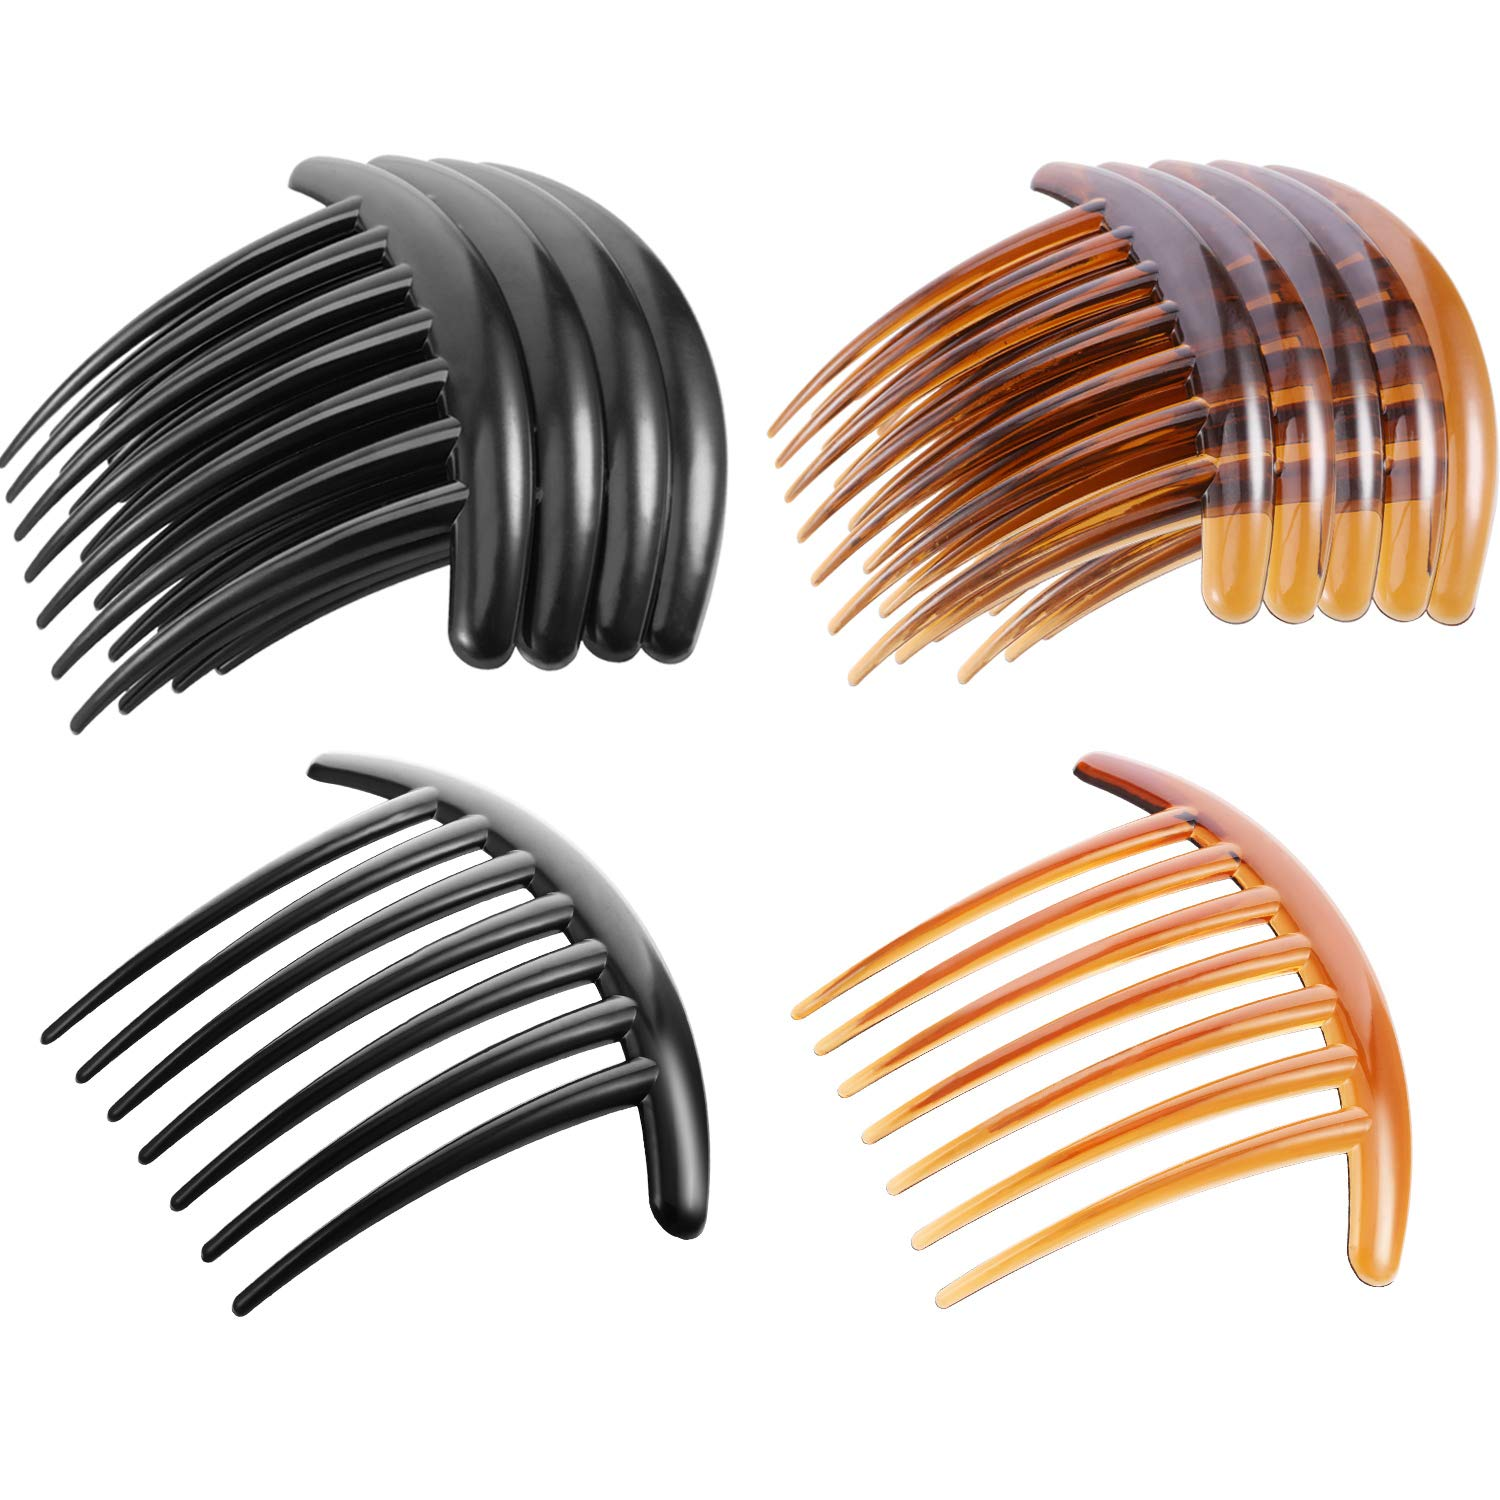 Tatuo 20 Pieces 7 Tooth French Twist Comb Plastic Hair Clip Hair Side Combs Hair Accessory for Women Girls, Black and Brown by Tatuo